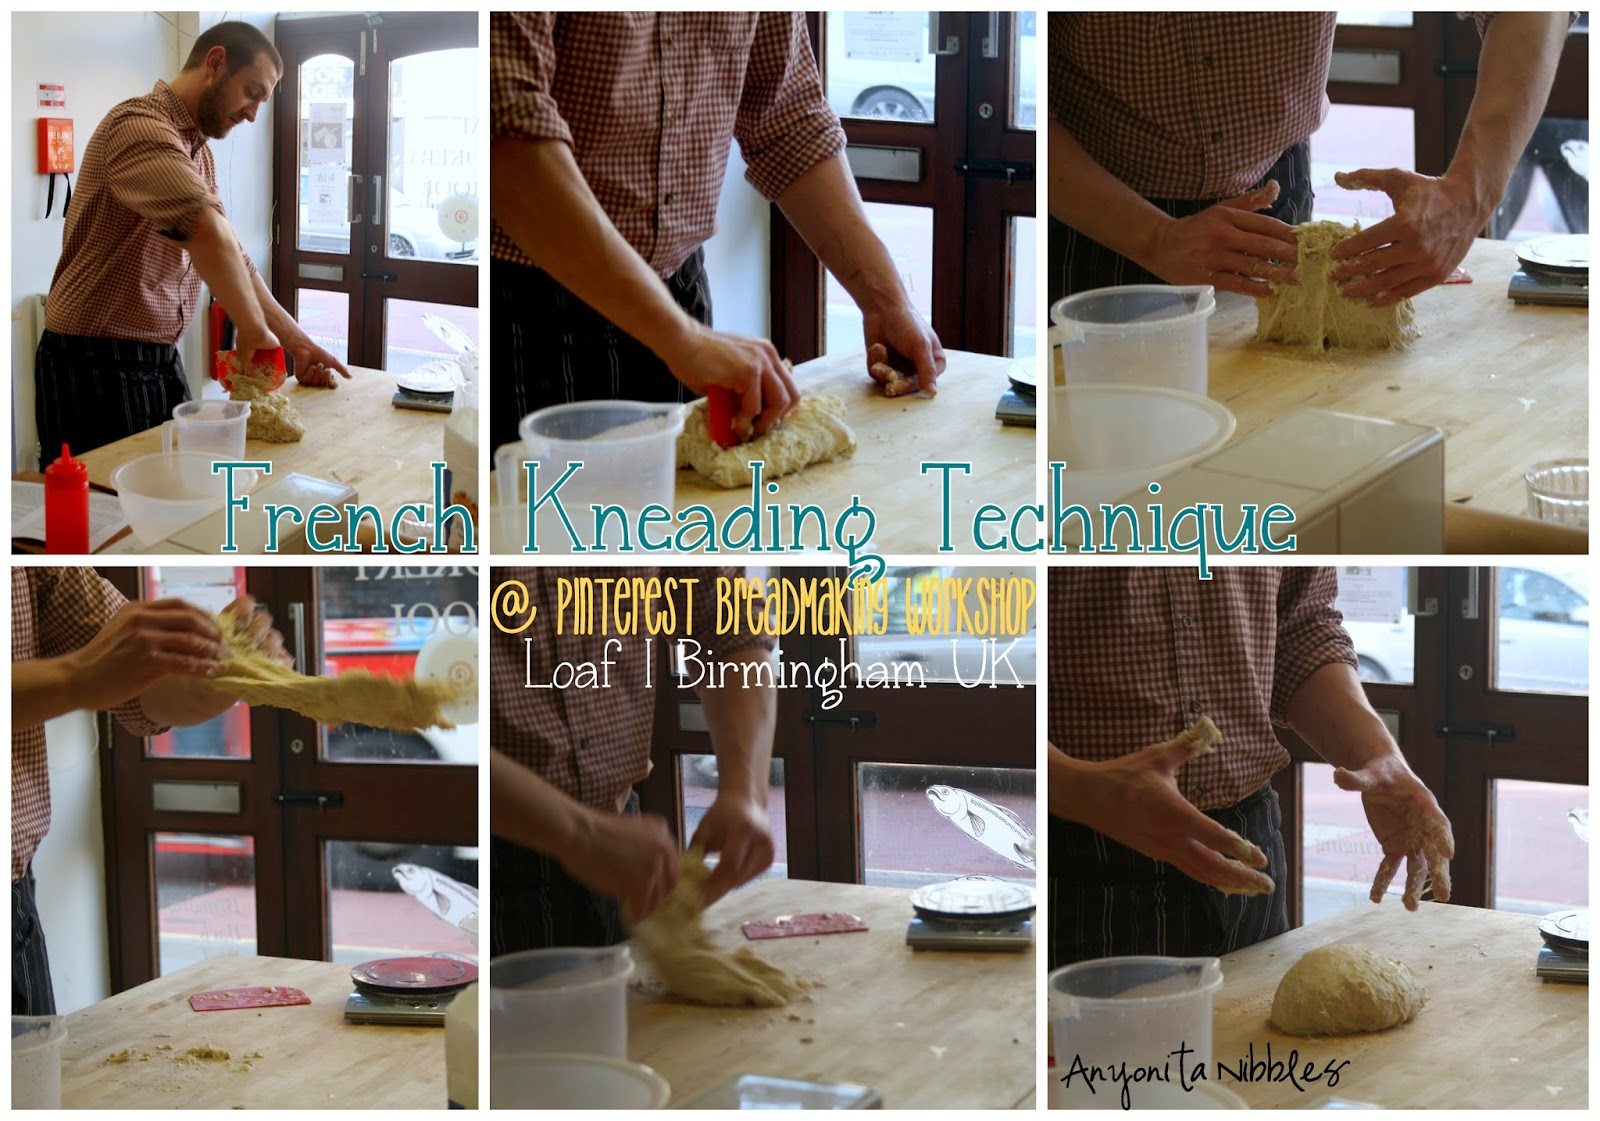 Andy from Loaf demonstrates a French kneading technique